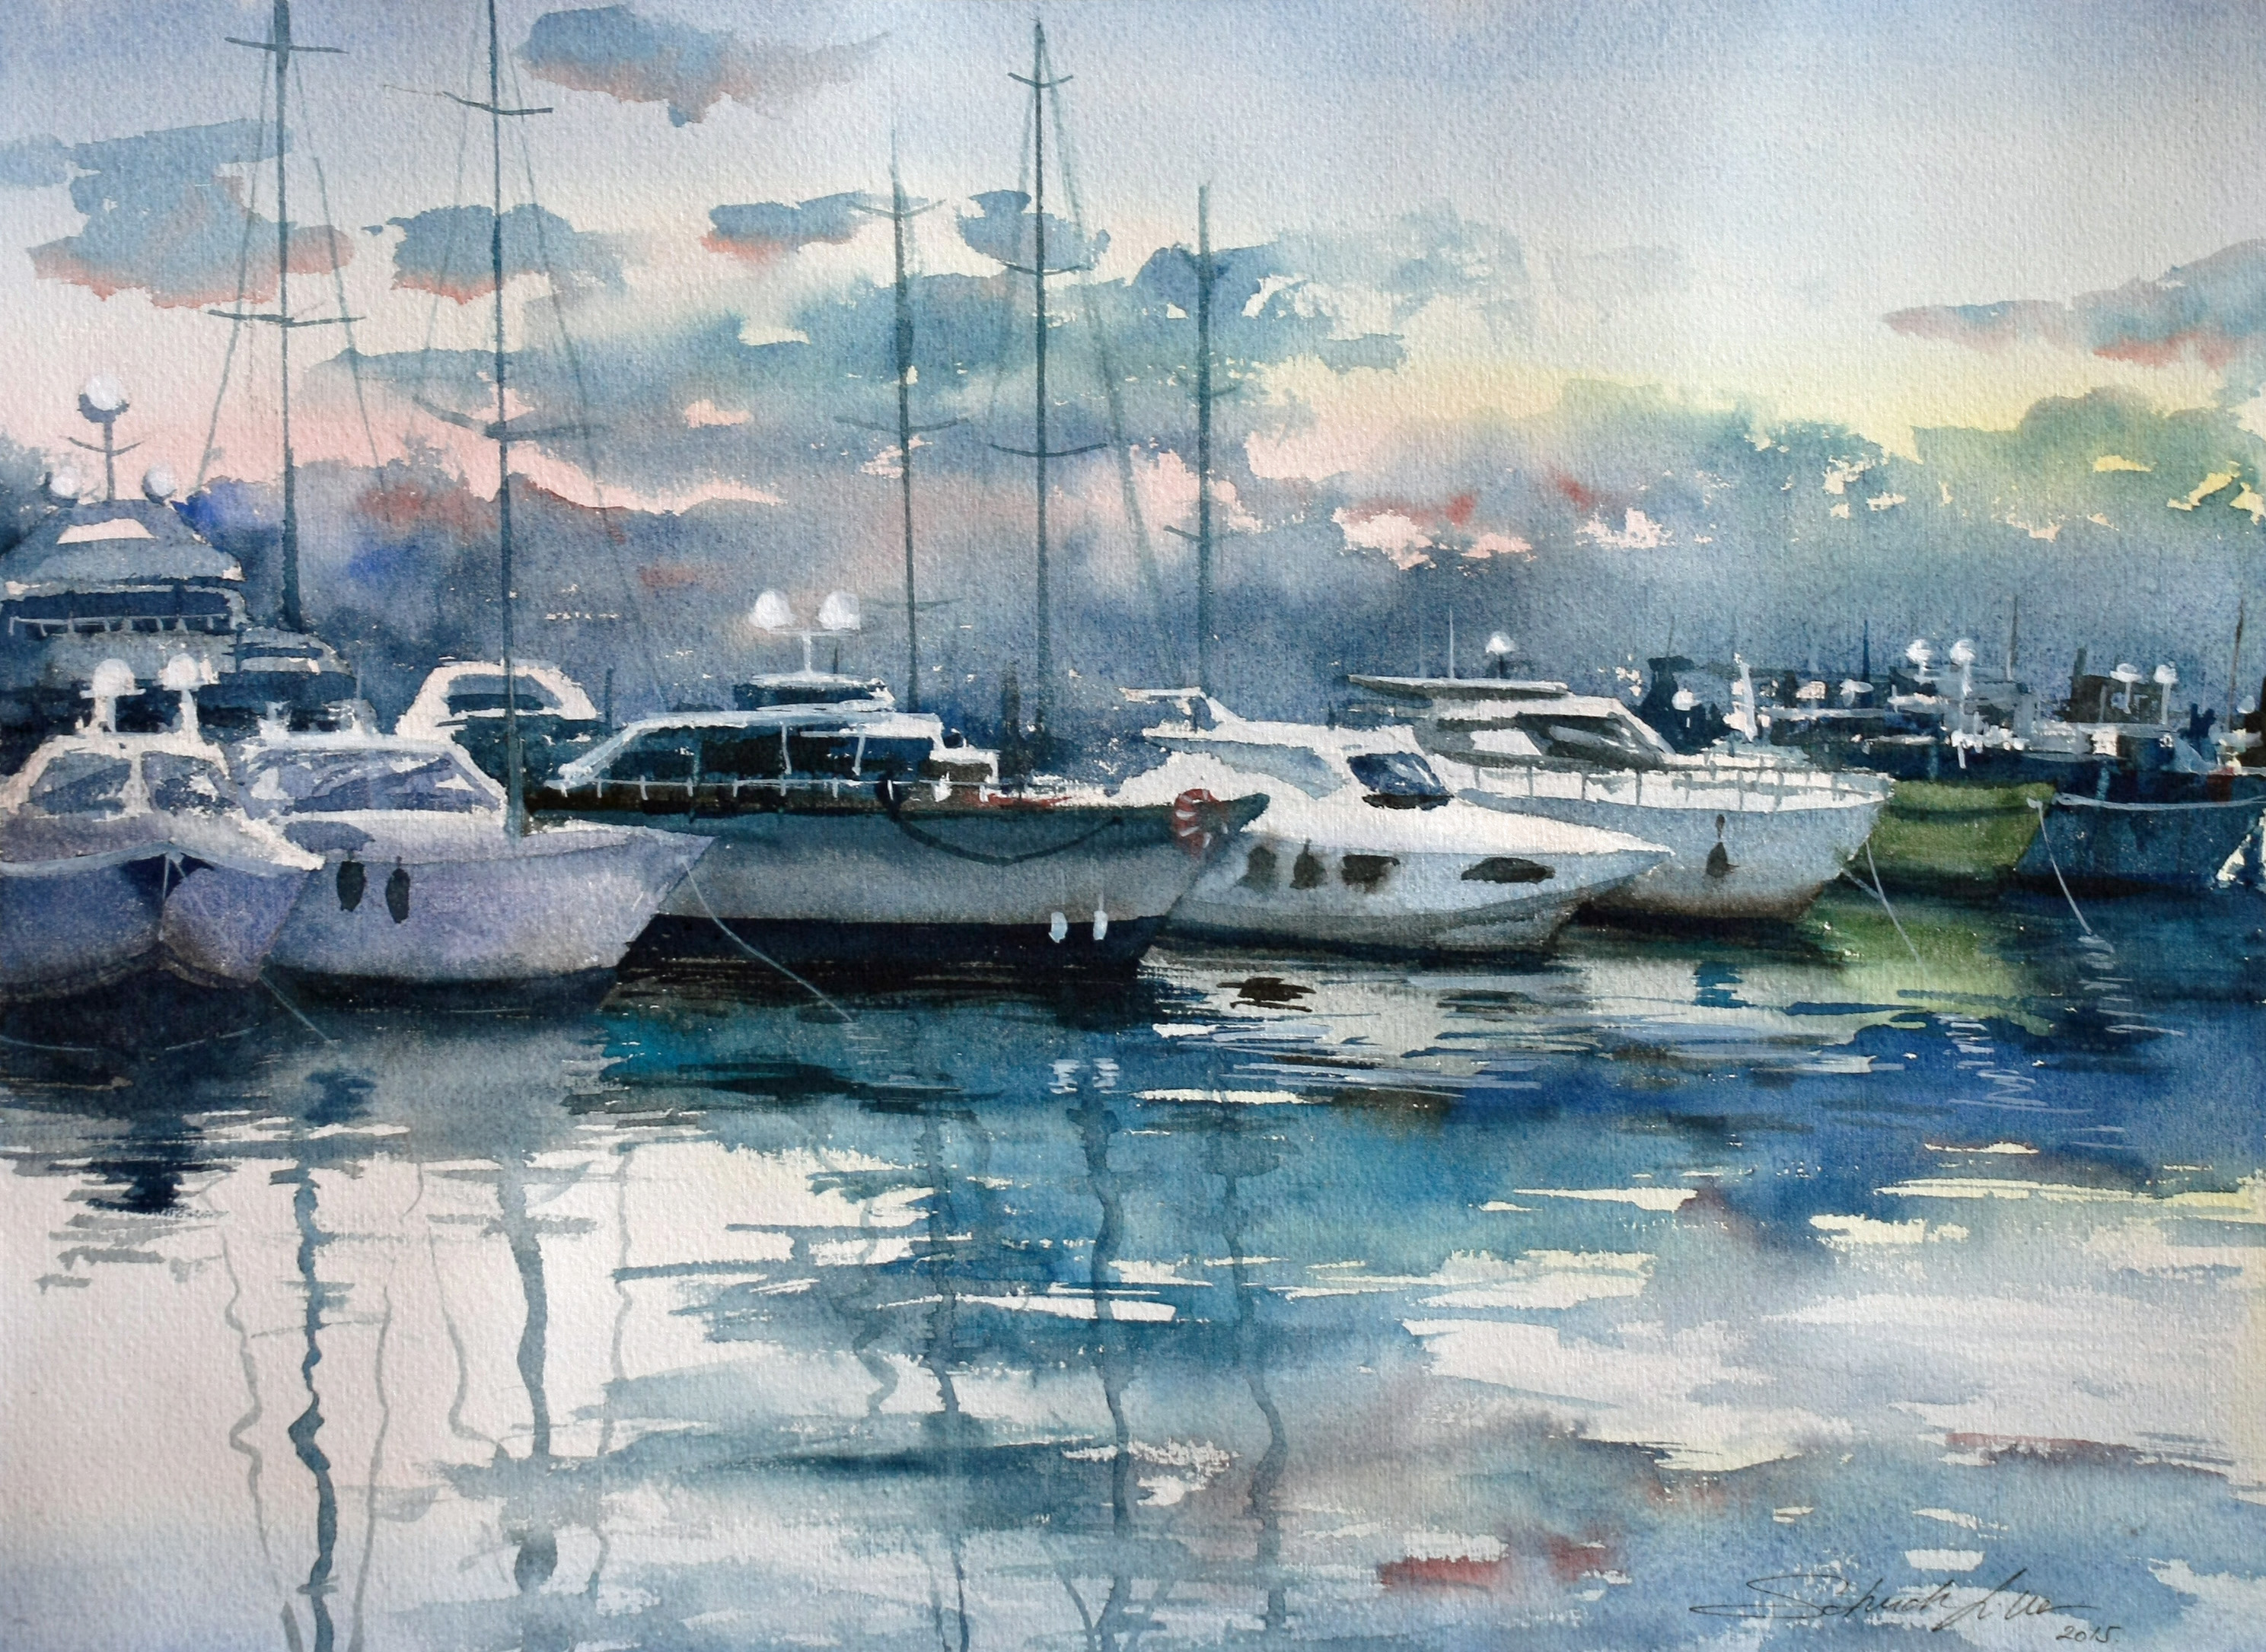 Athens boats - Watercolor paintings by Lilla Schuch